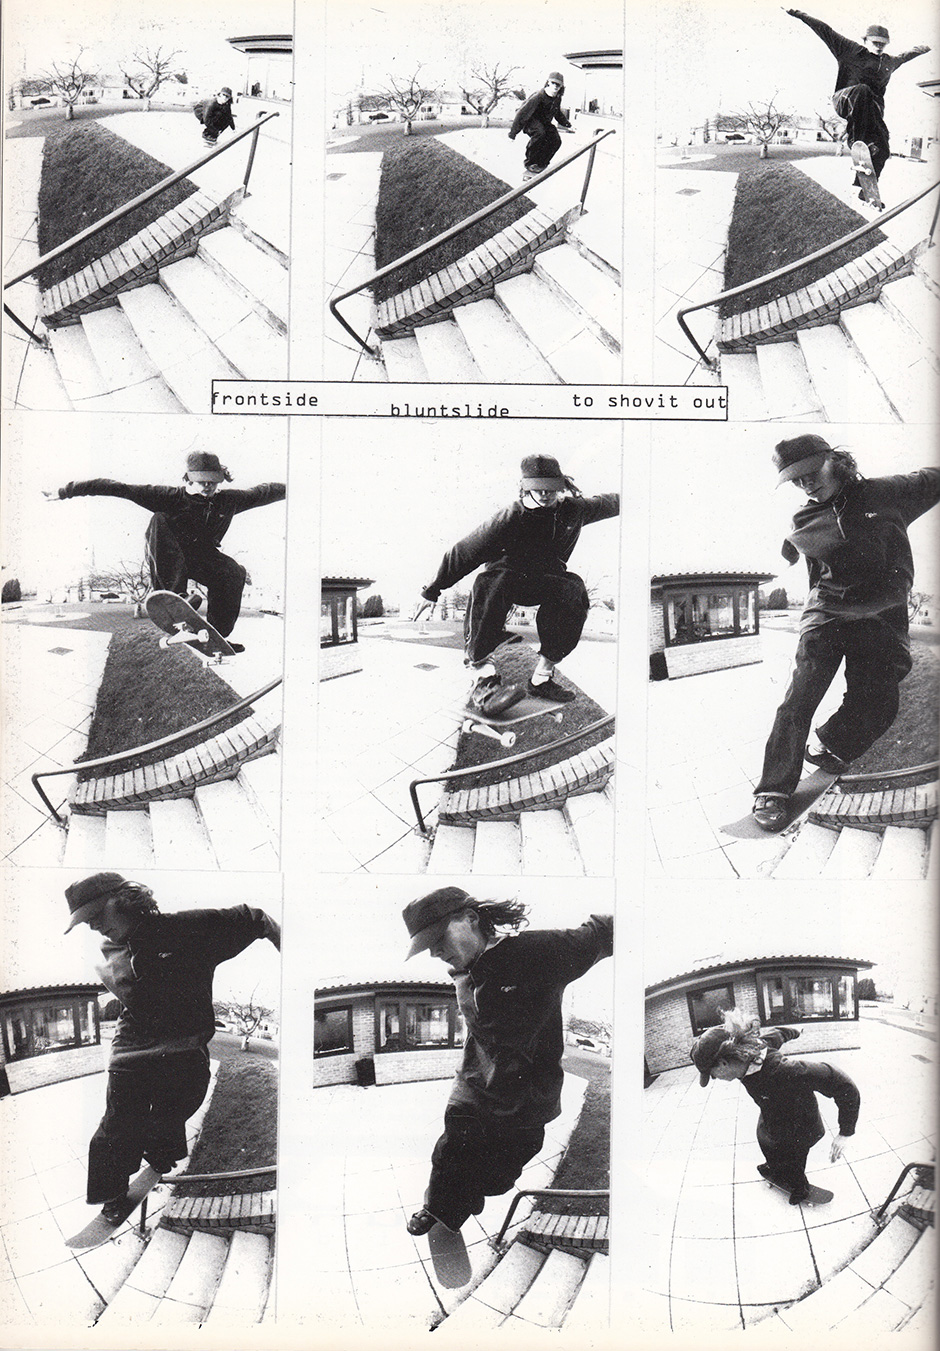 Frontside bluntslide Shove it from System Mag in 1993. Photo: Wig Worland